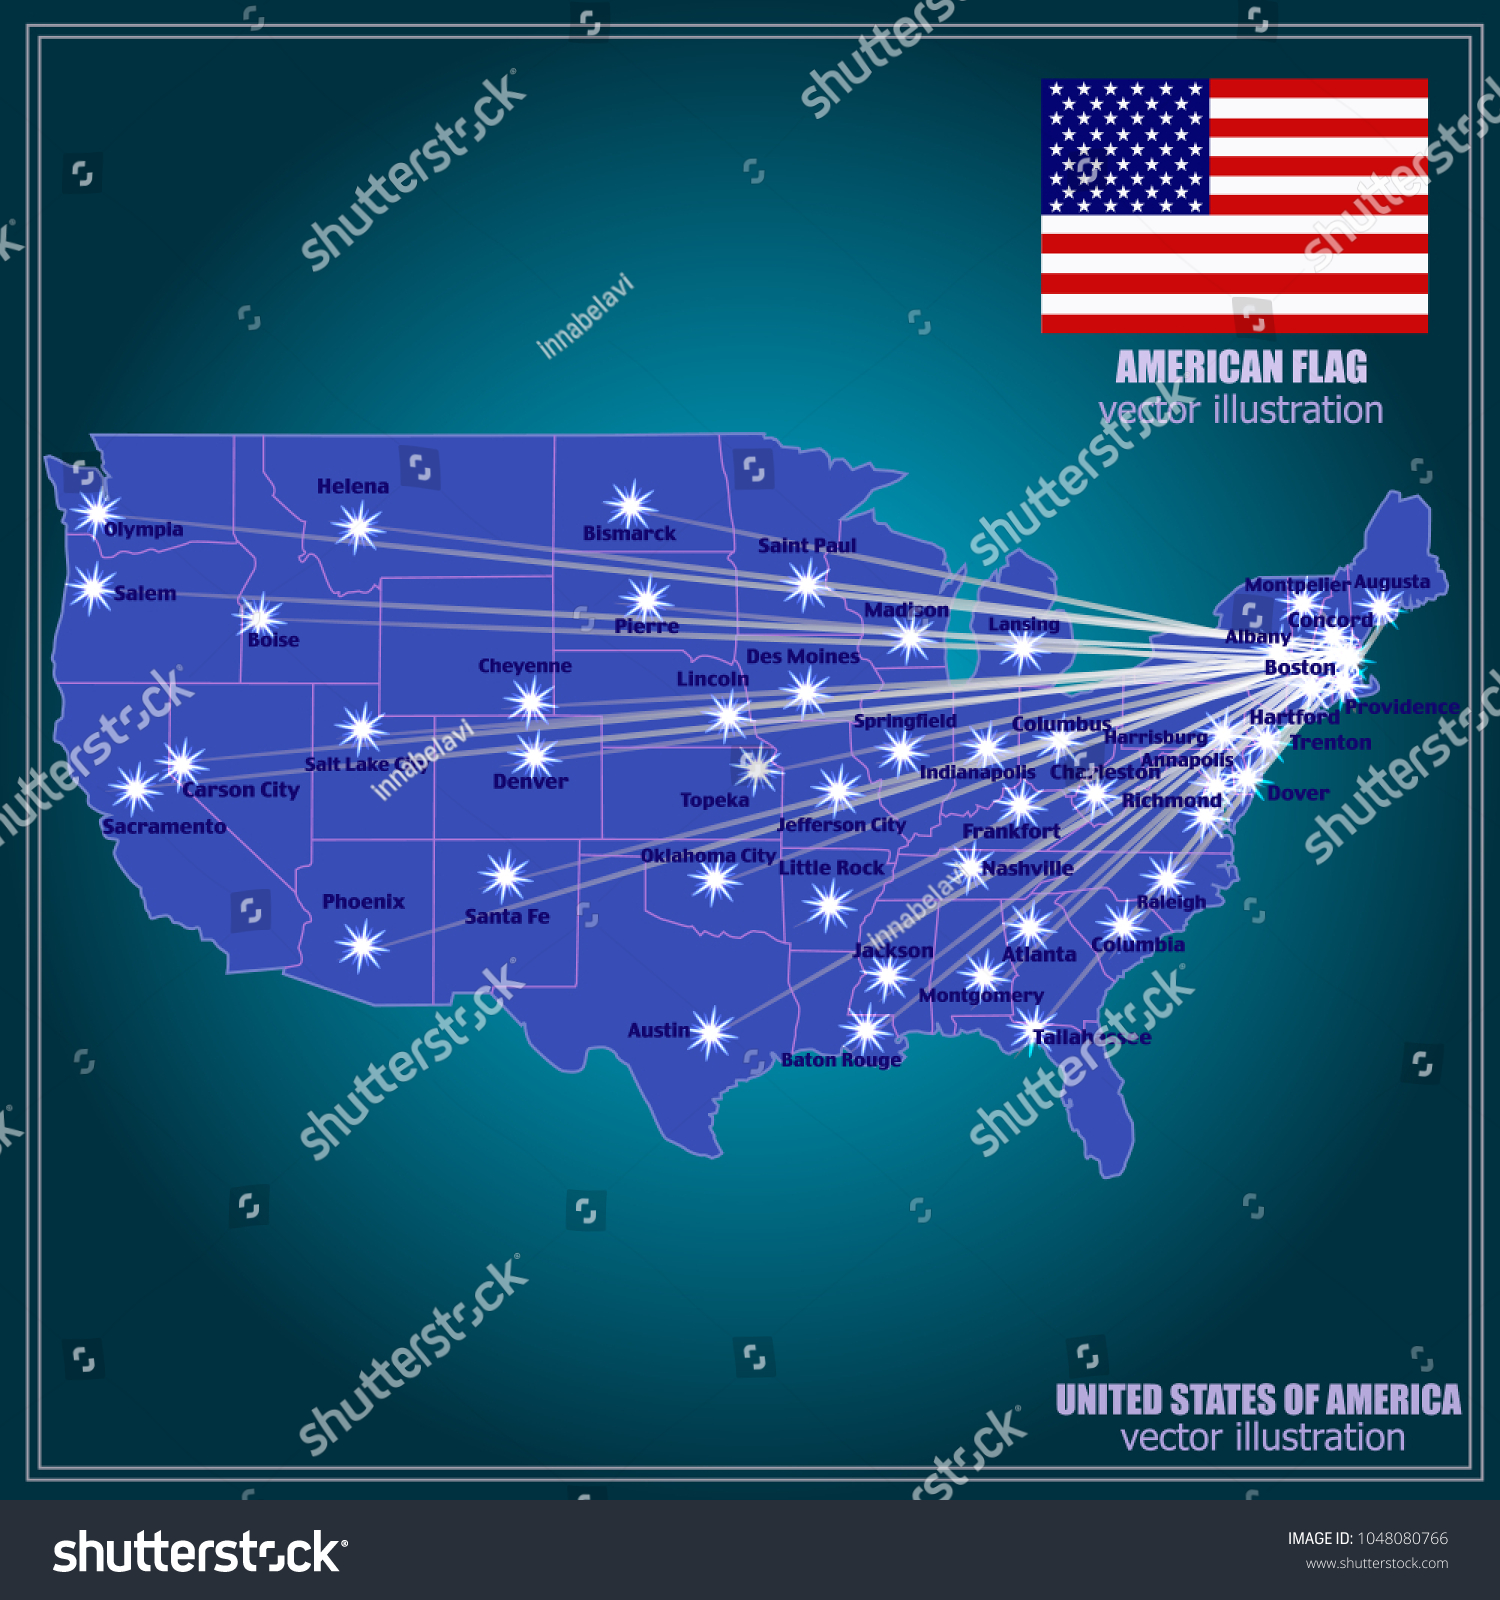 United States America Vector Map USA Stock Vector (Royalty Free ...